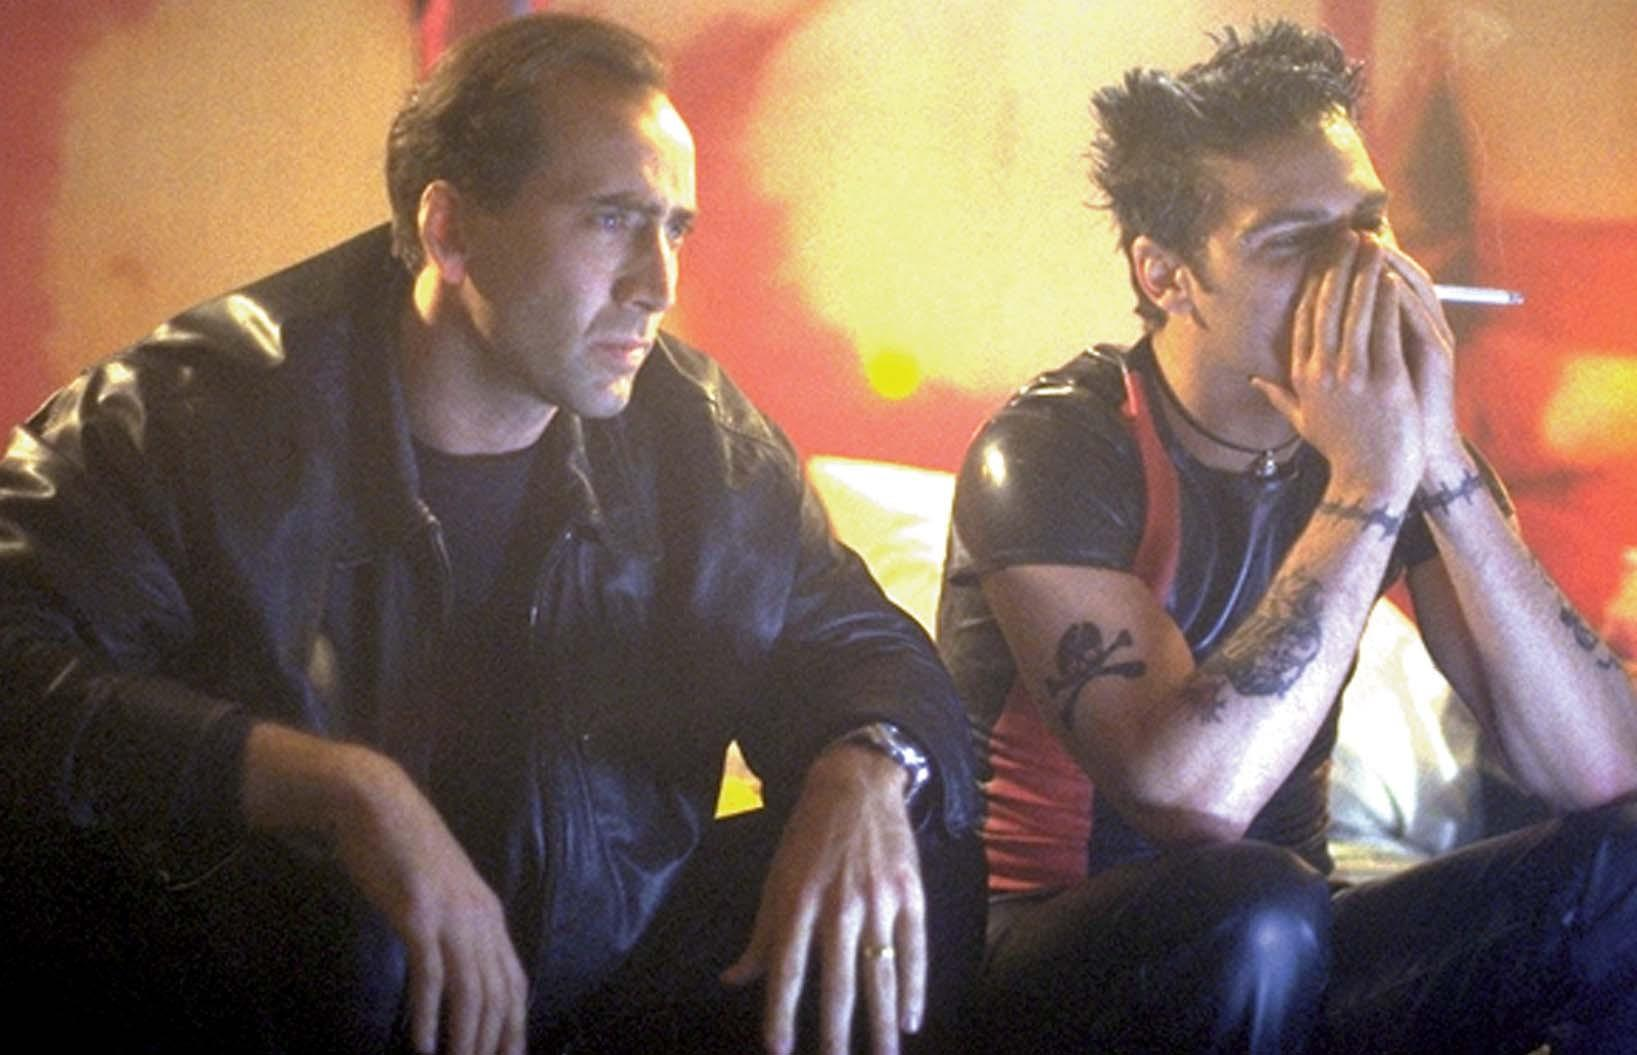 still-of-nicolas-cage-and-joaquin-phoenix-in-8mm